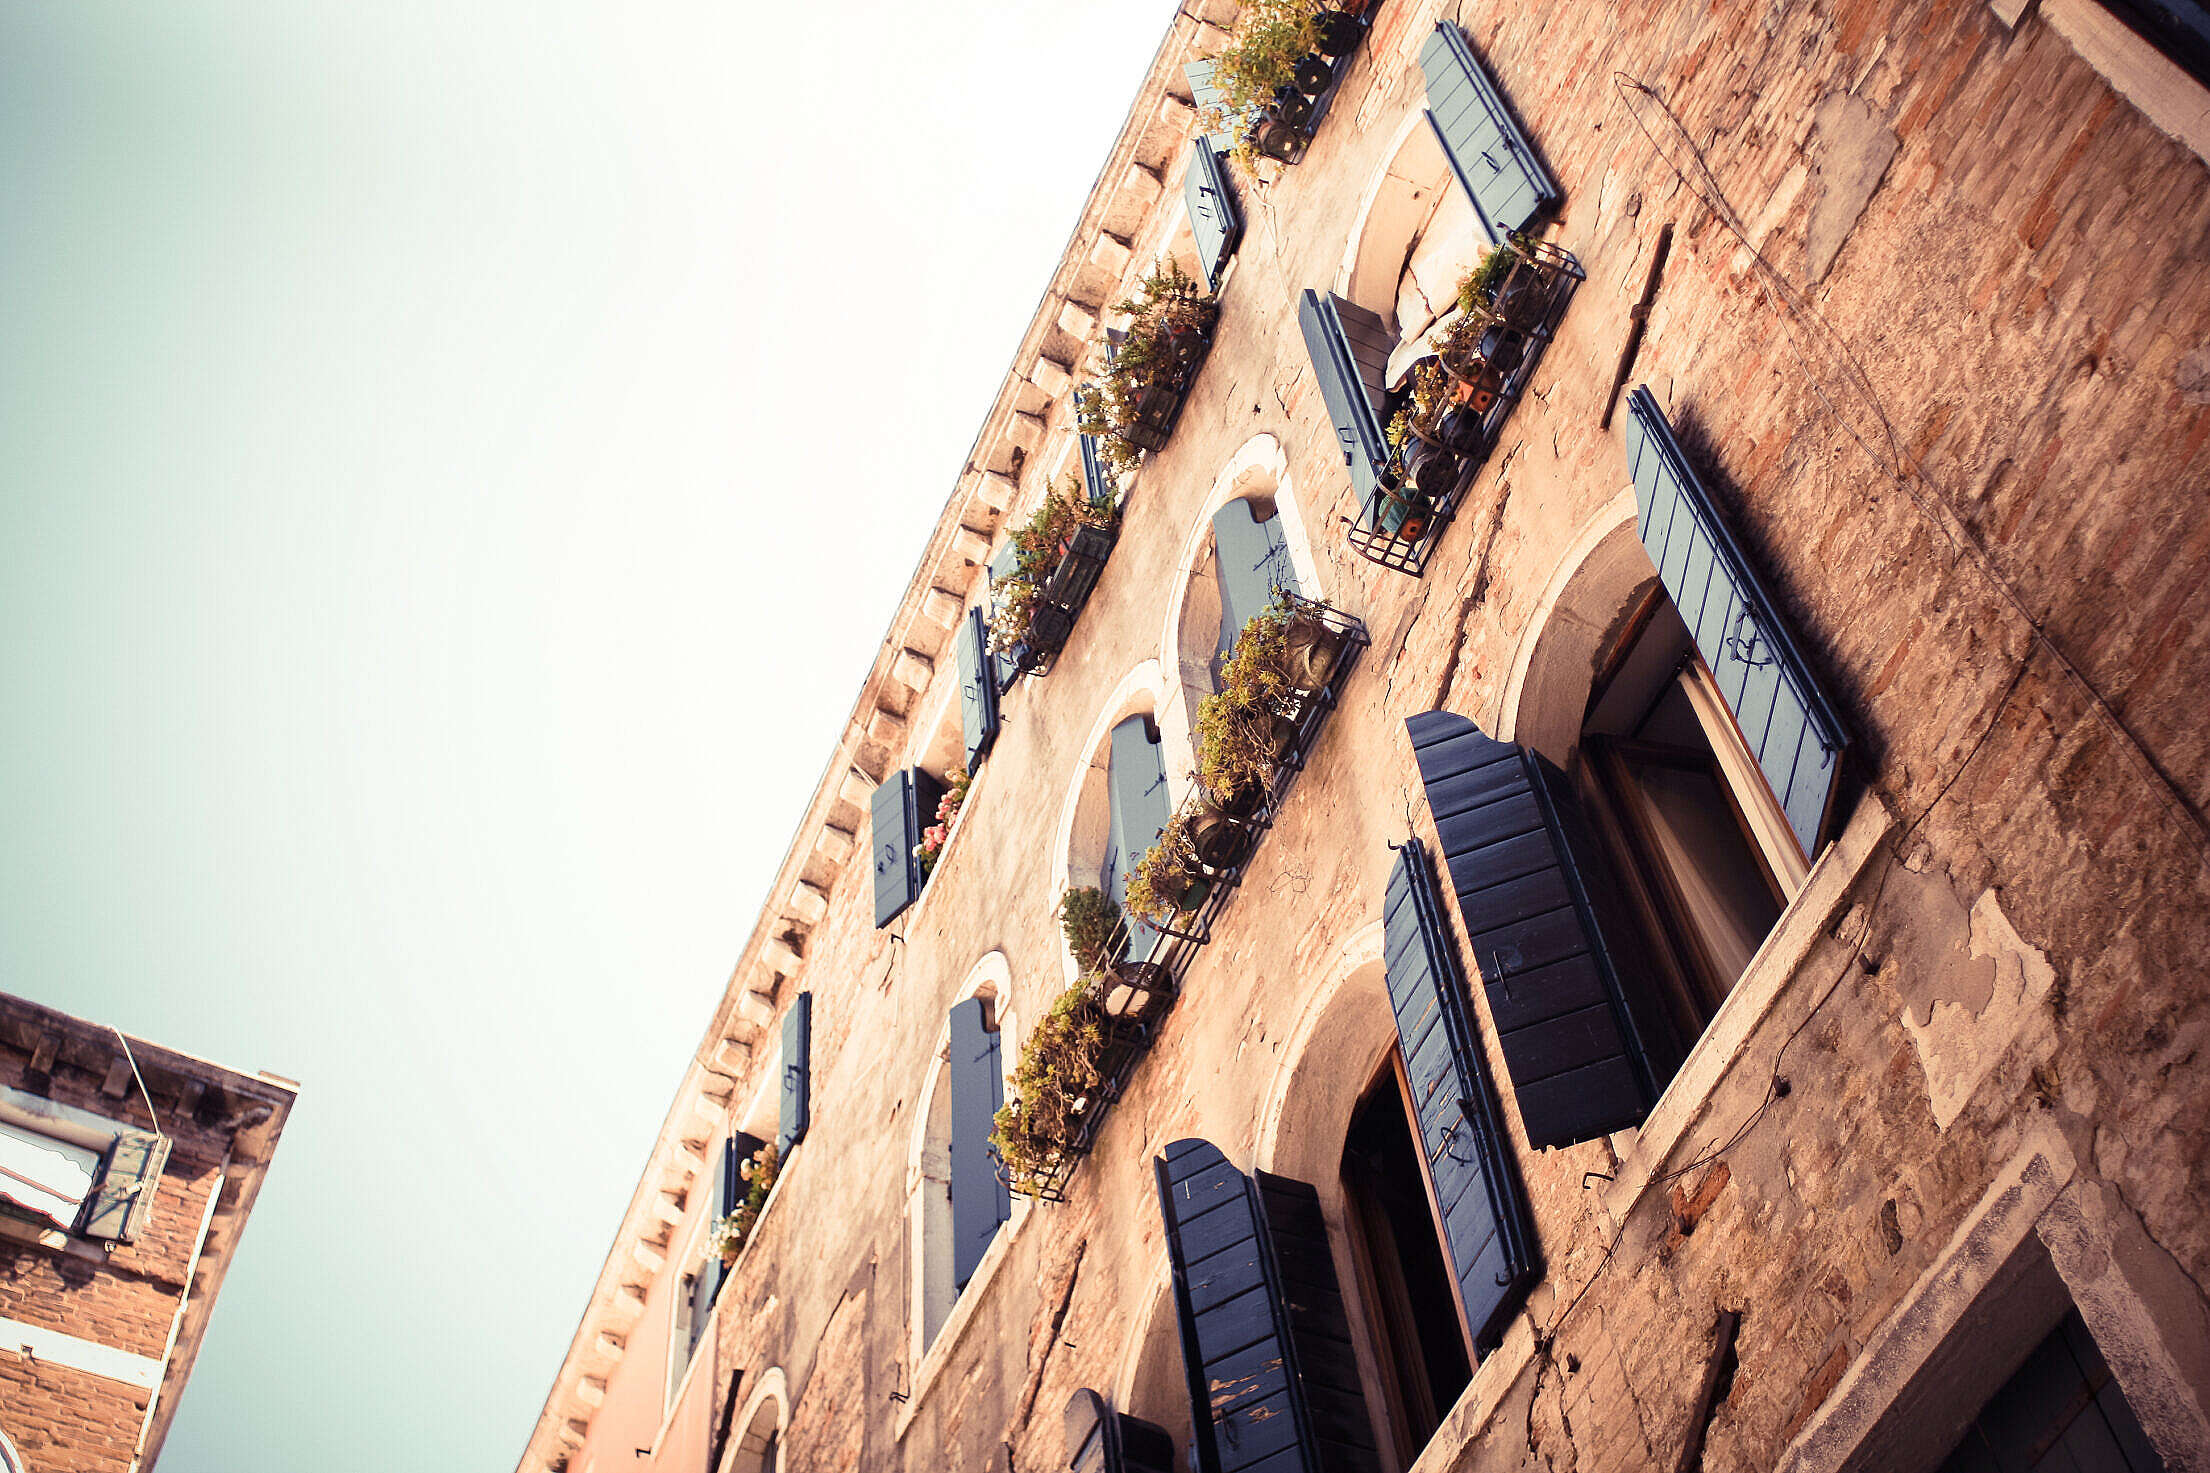 Old Blue Wooden Windows in Venice Free Stock Photo